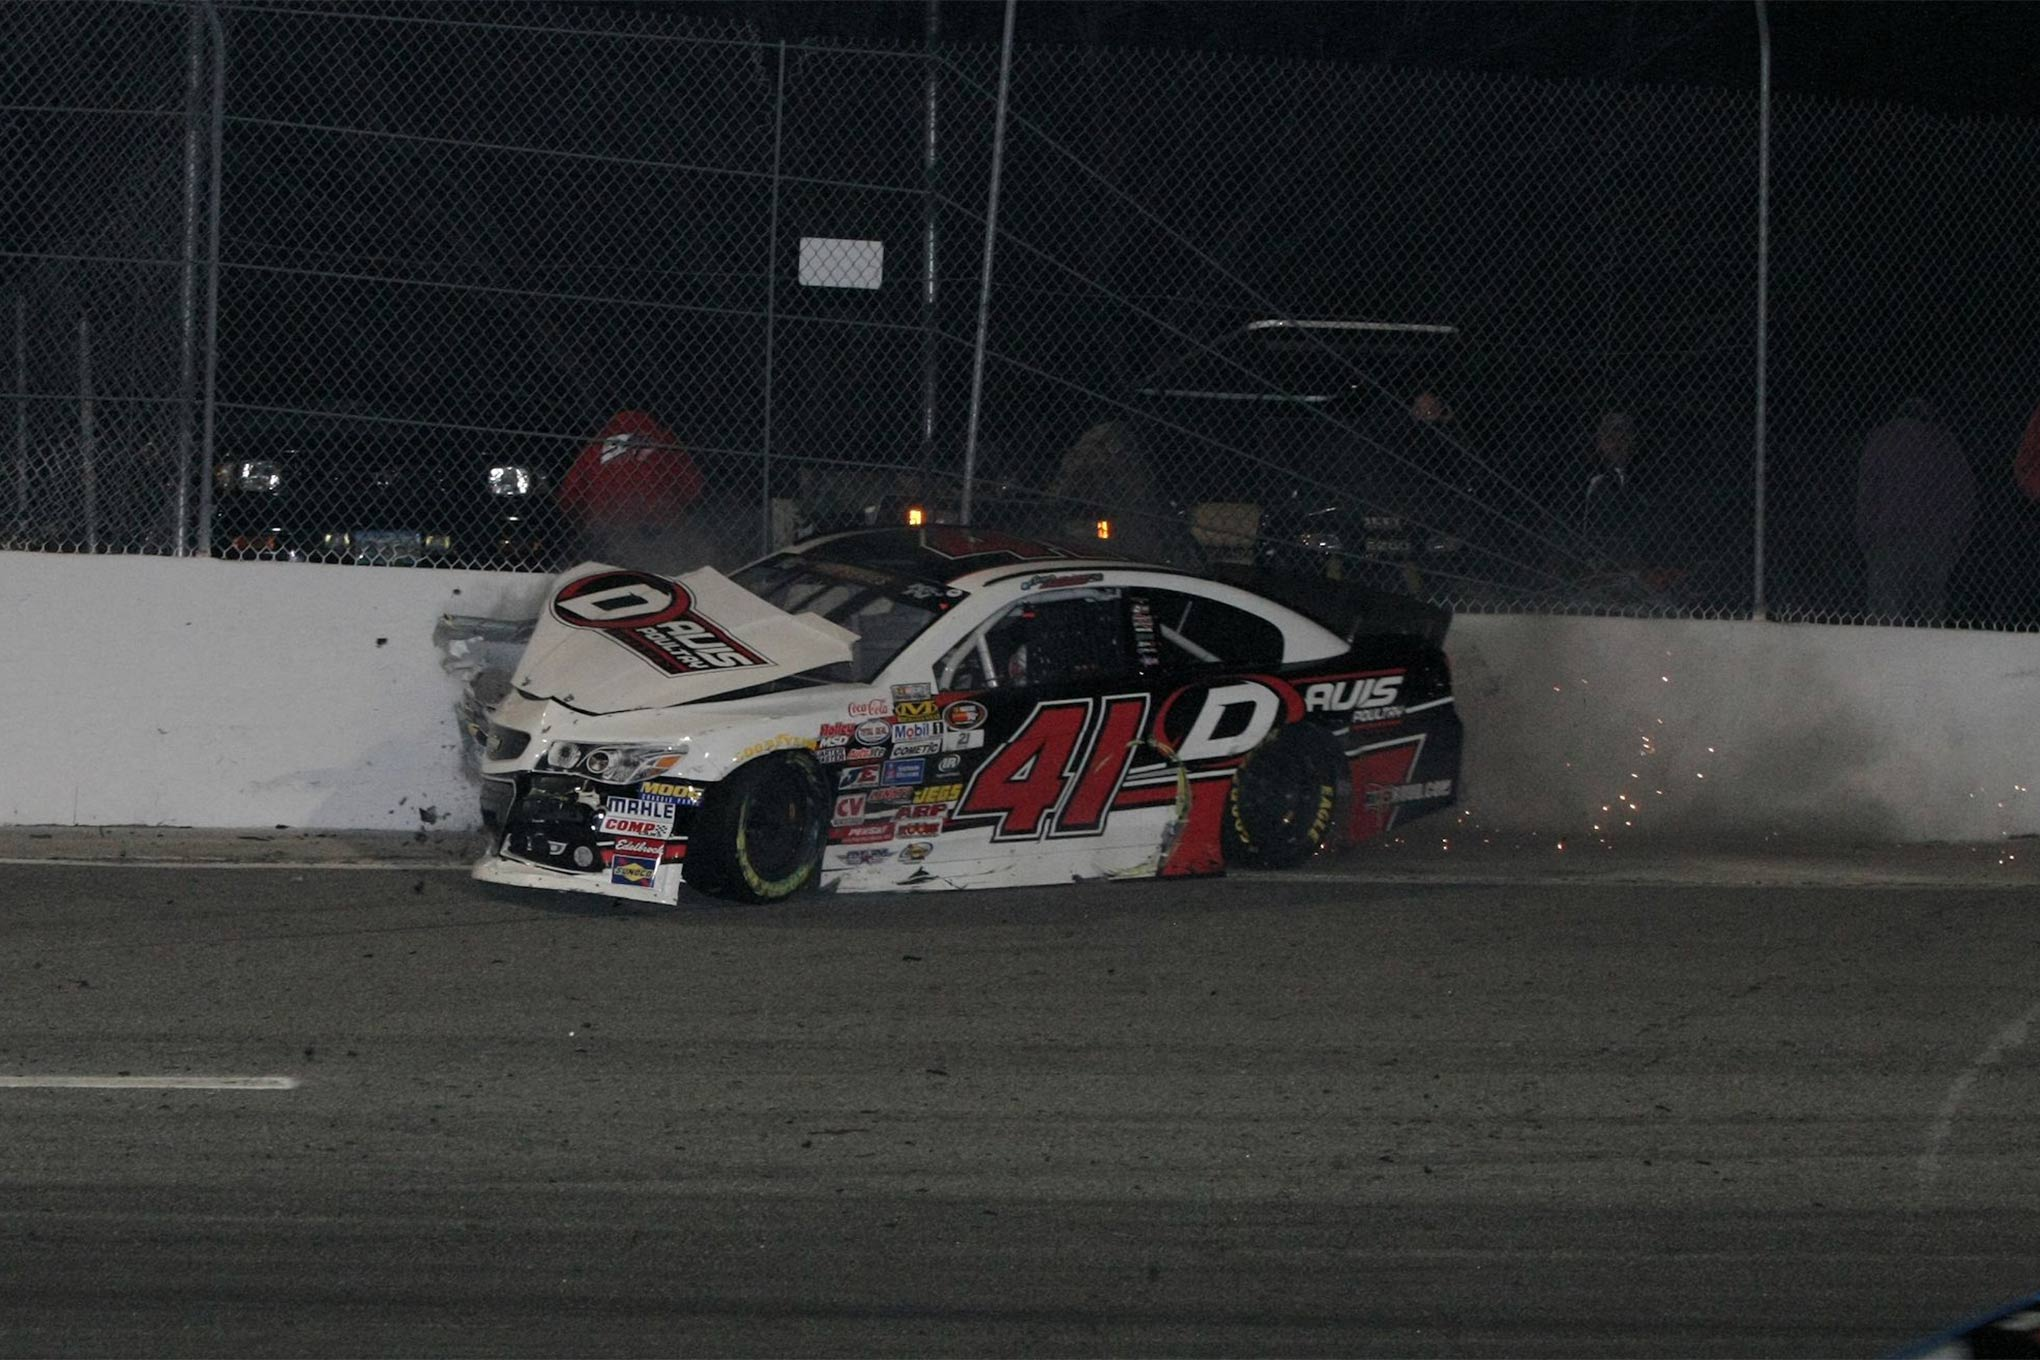 Spencer Davis smashes the fence in turn four.